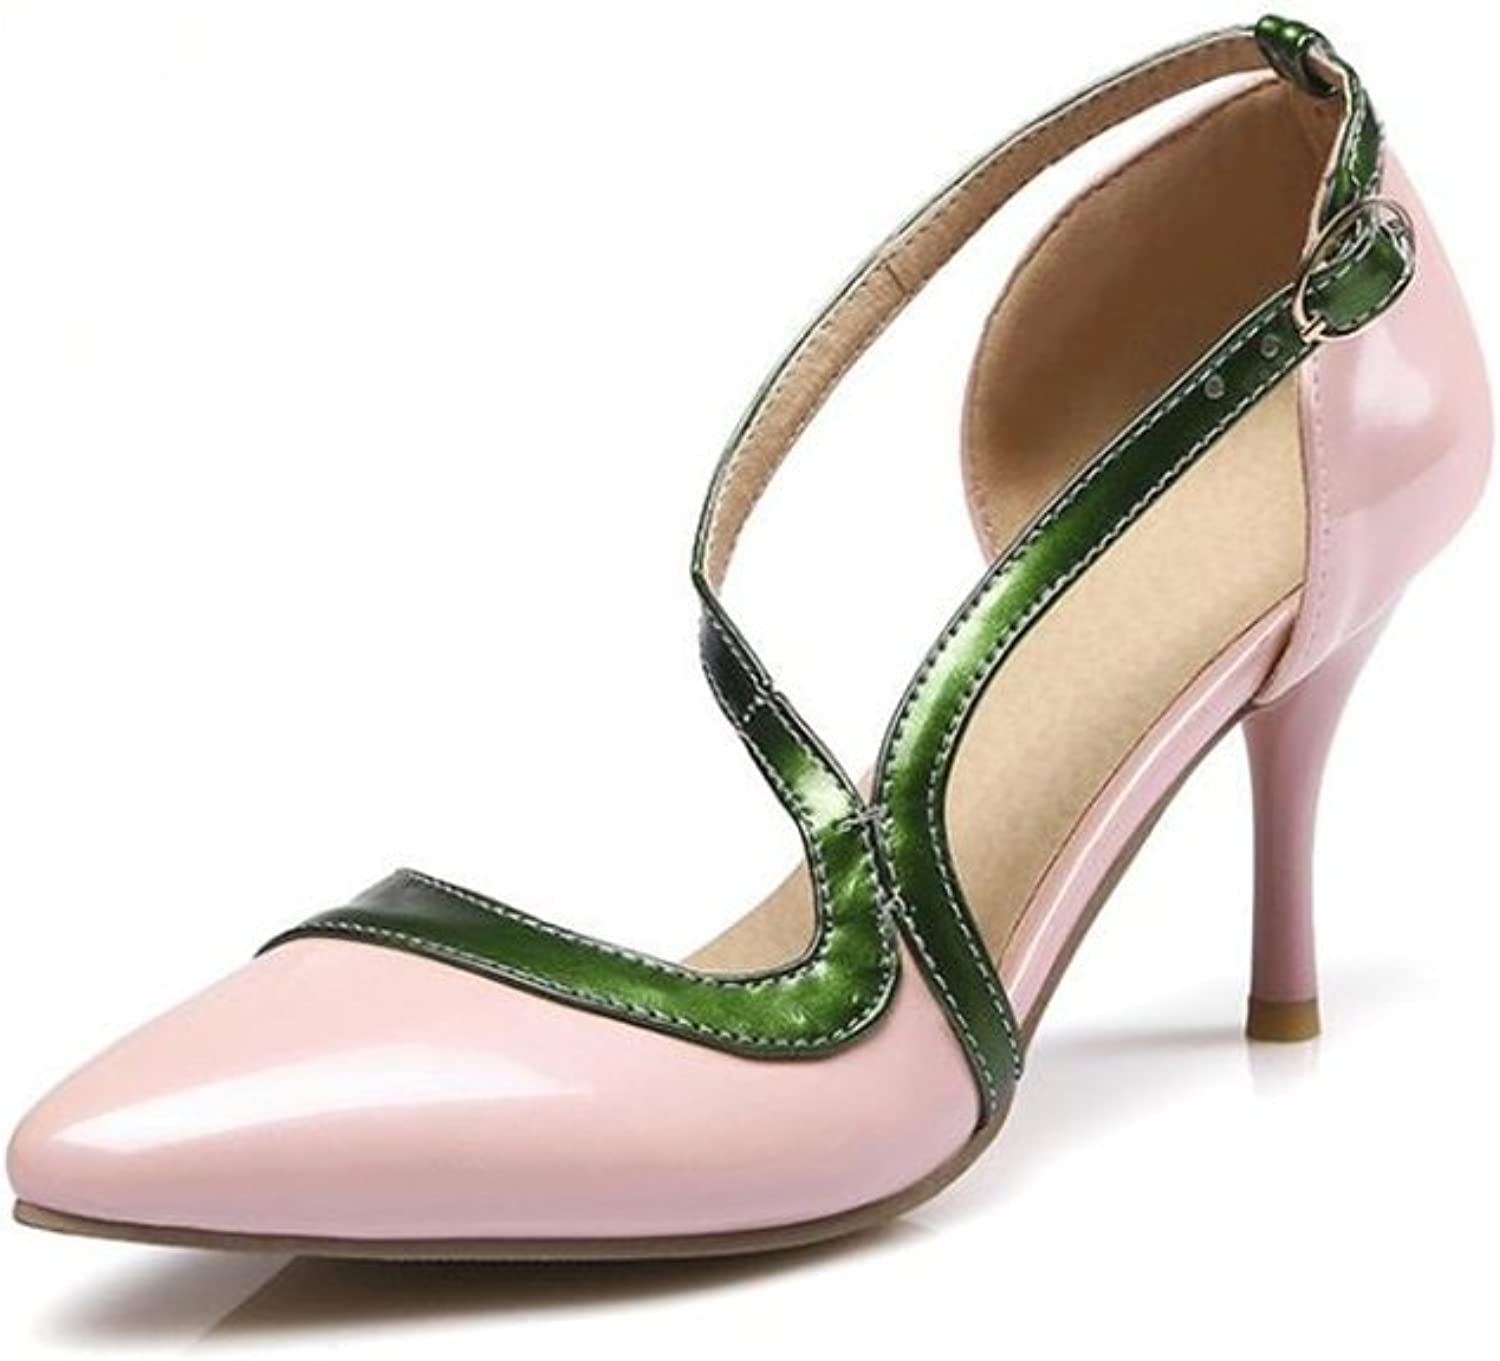 SUNNY Store Women T-Strap Pointed Toe High Heel Evening Party Dance Wedding shoes